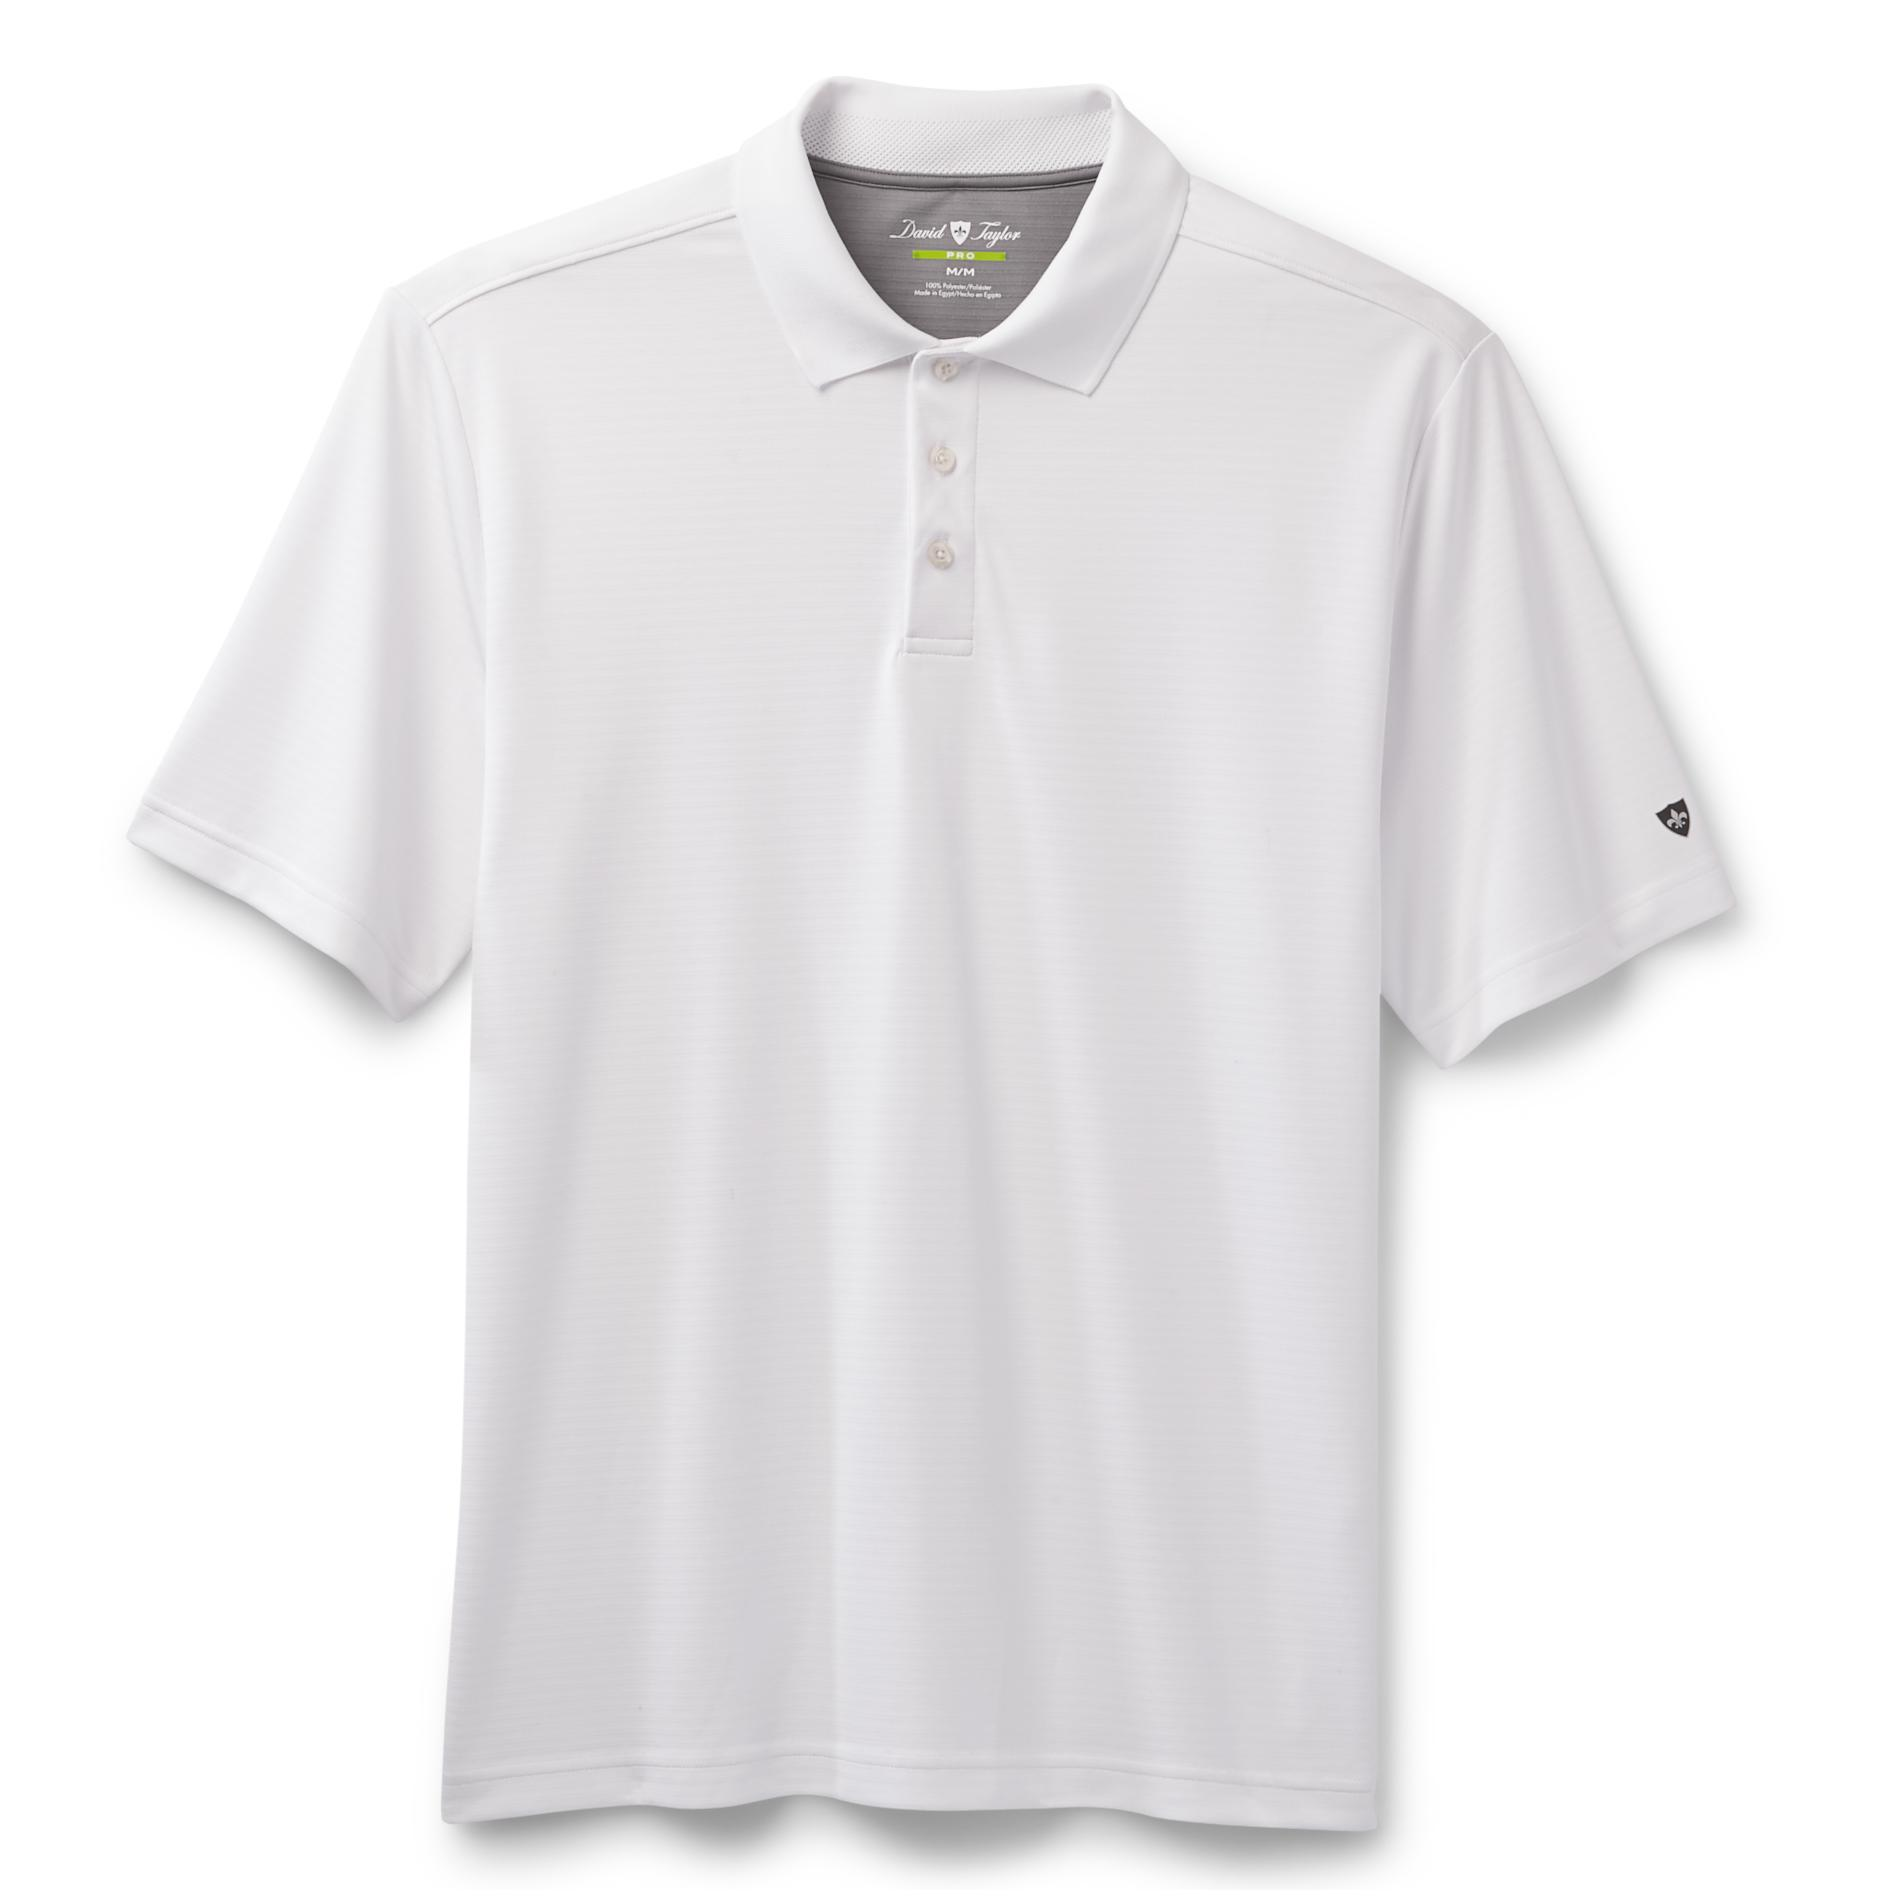 David Taylor PRO Men's Big & Tall Polo Shirt at Kmart.com